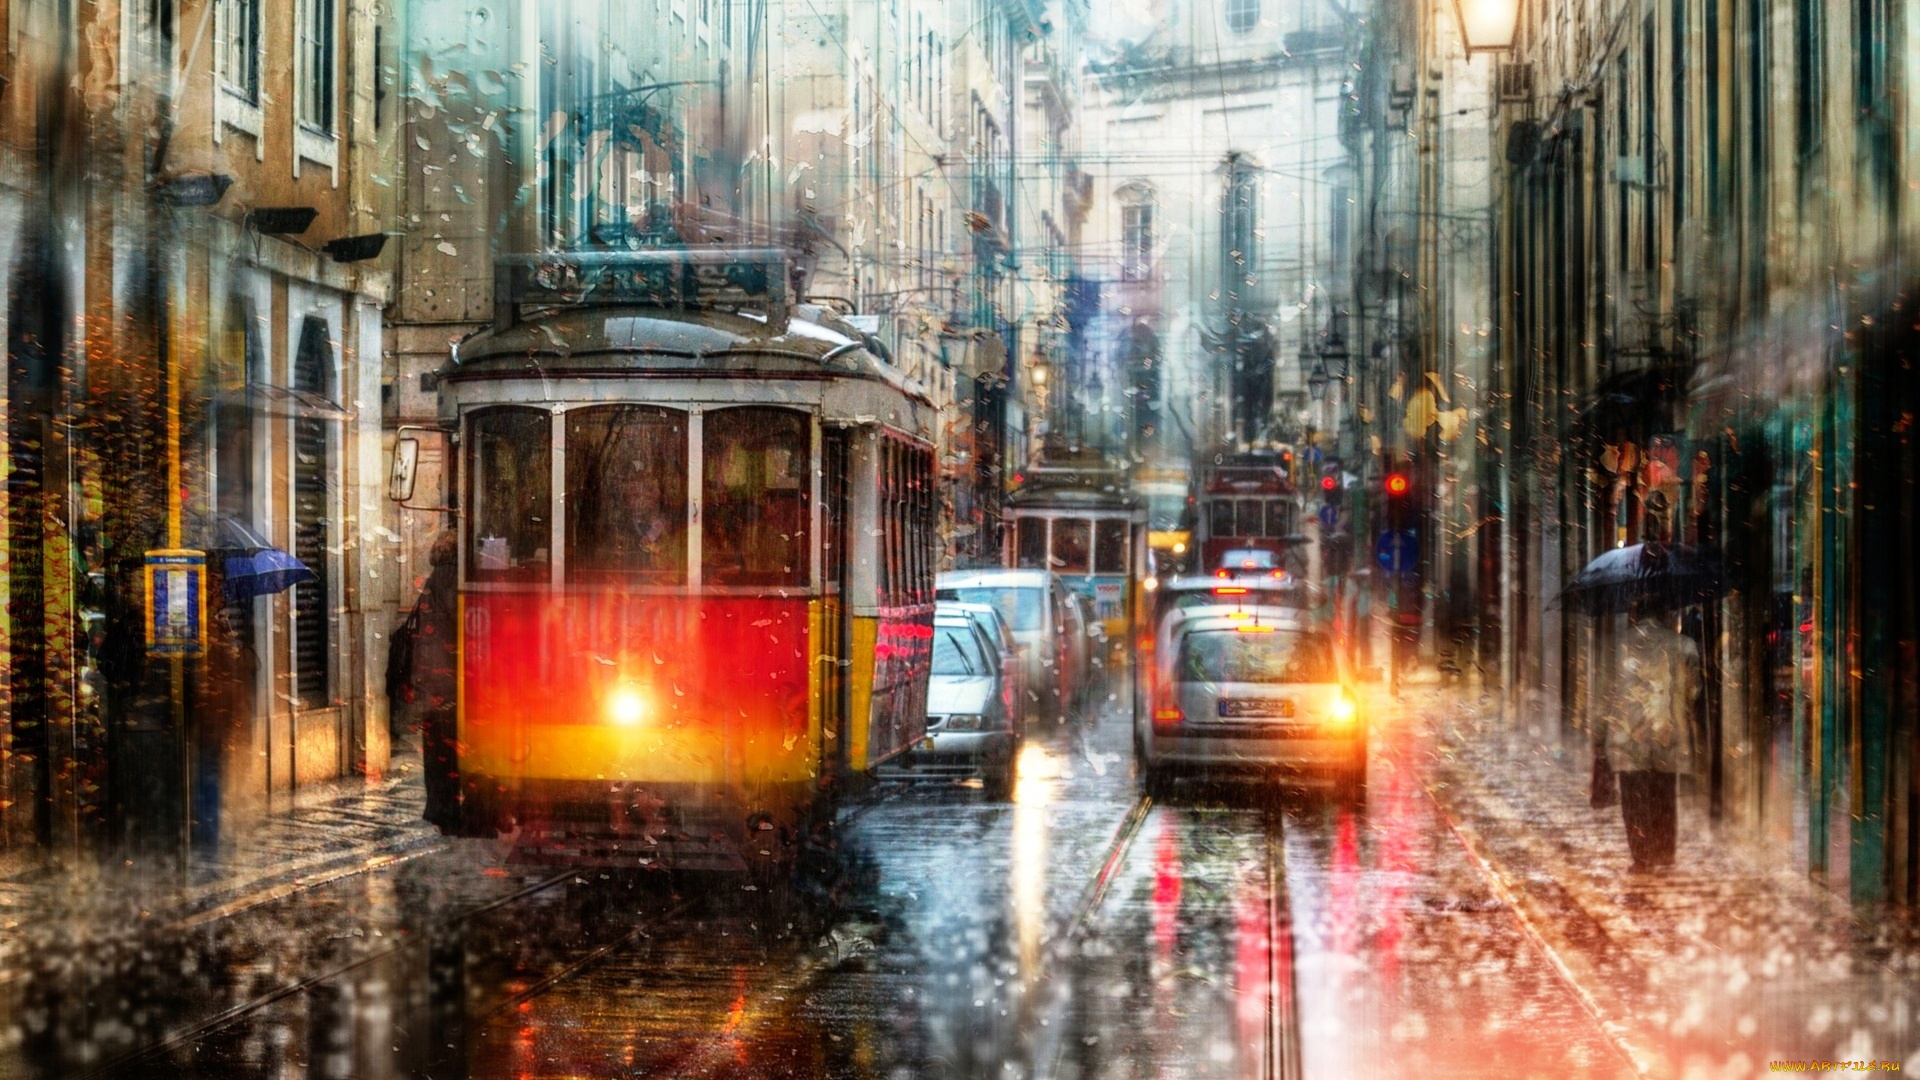 Tram wallpaper for pc